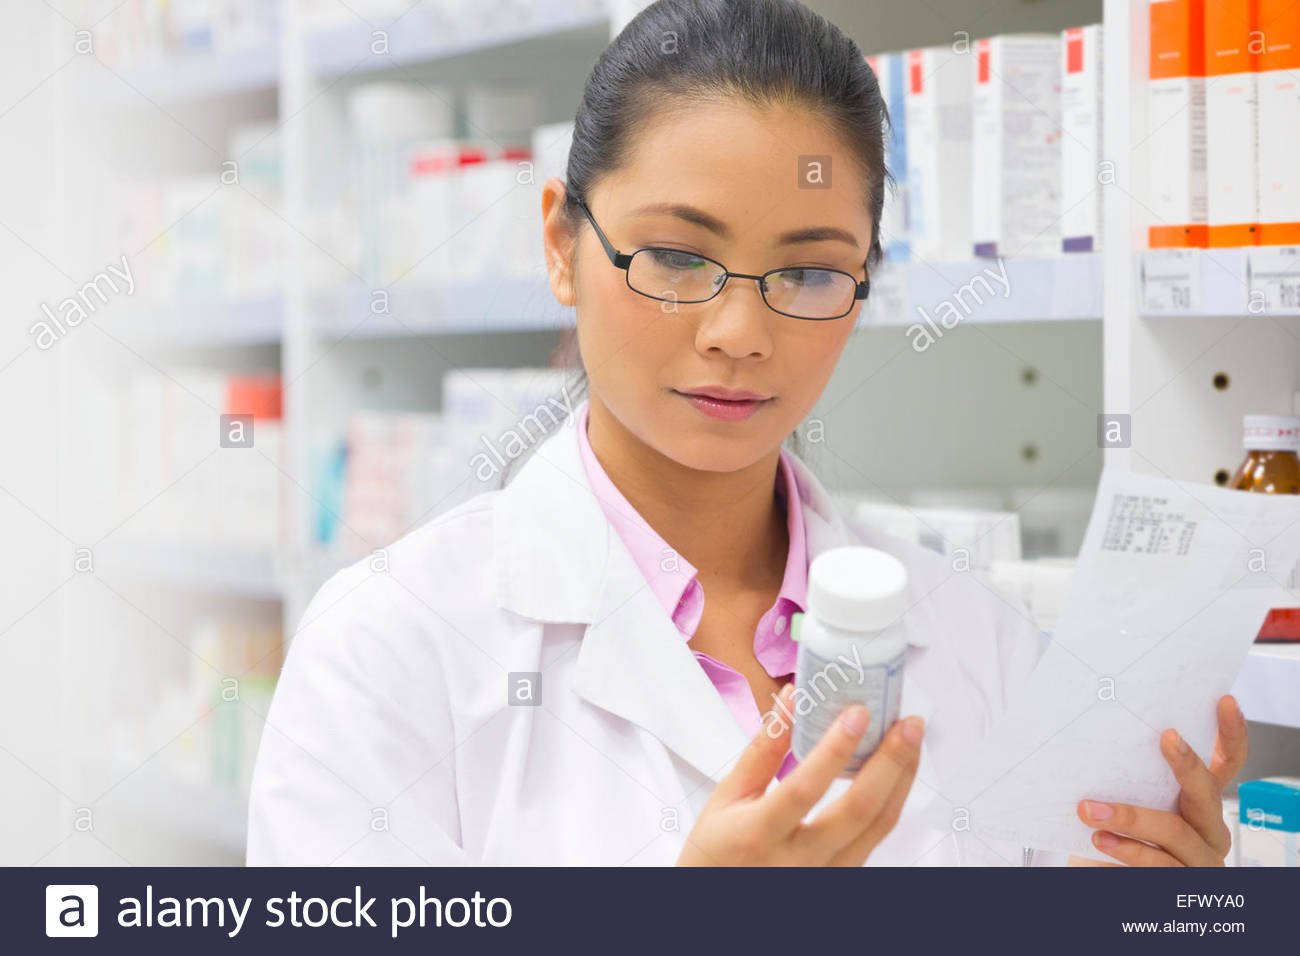 Pharmacist reading prescription and medication pot from pharmacy shelf - Stock Image